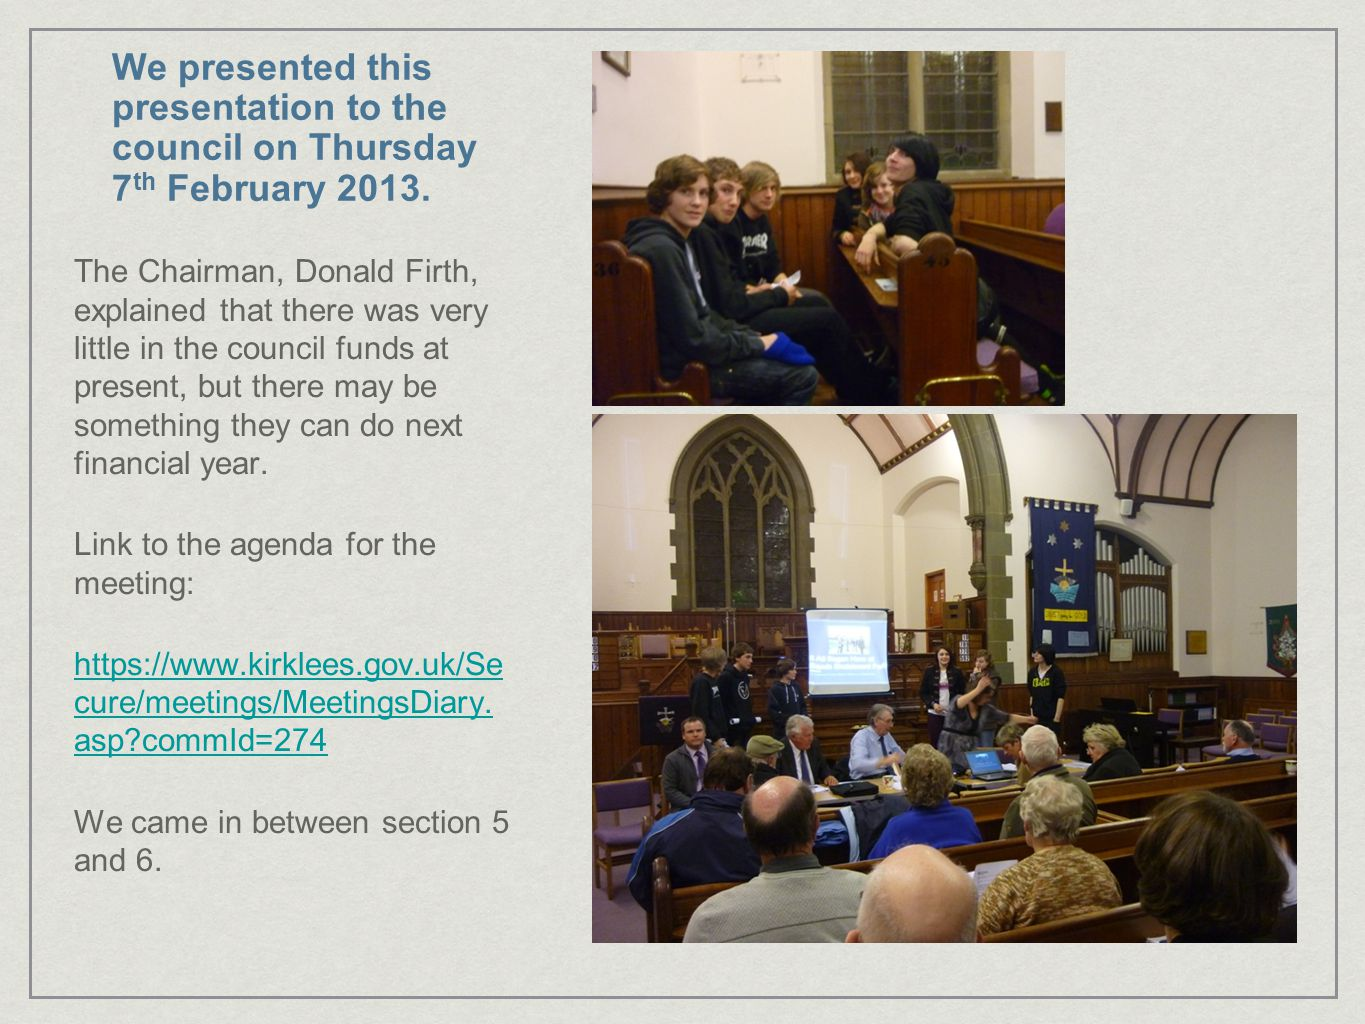 We presented this presentation to the council on Thursday 7 th February 2013.